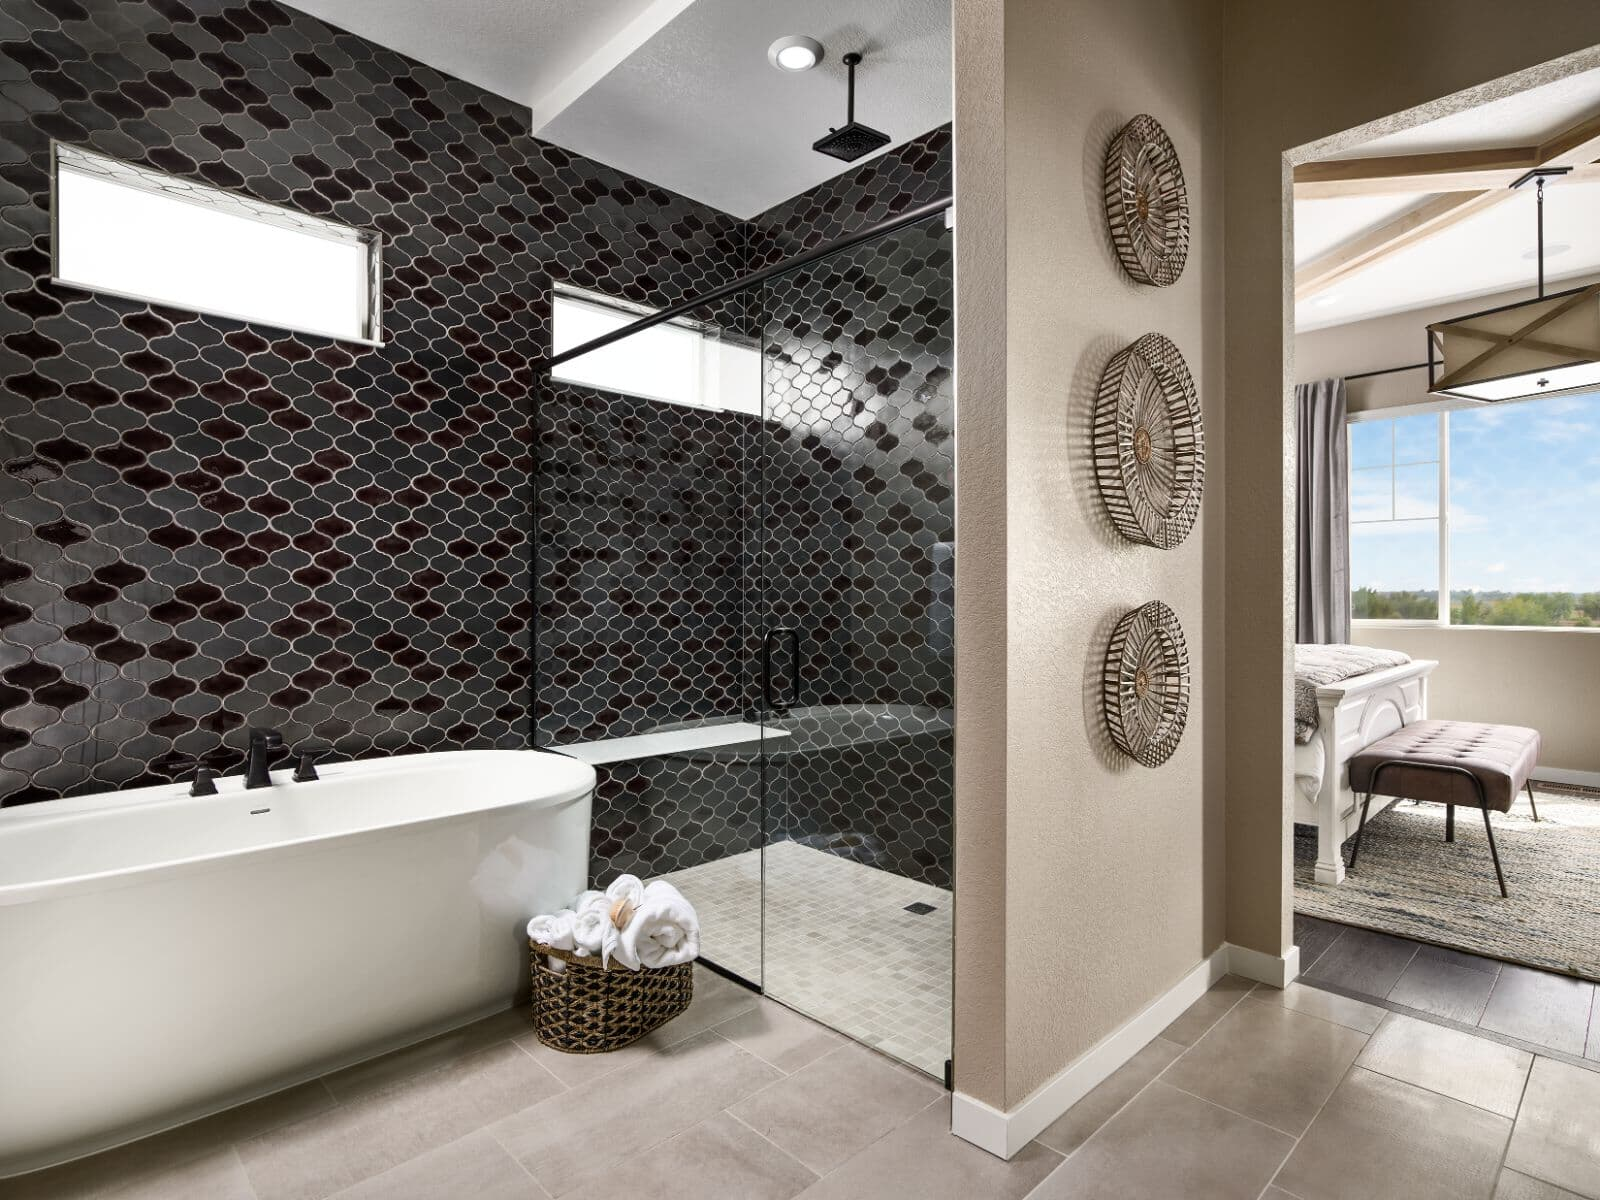 Ovation-Two-Master-Bathroom-Barefoot-Lakes-Denver-Colorado